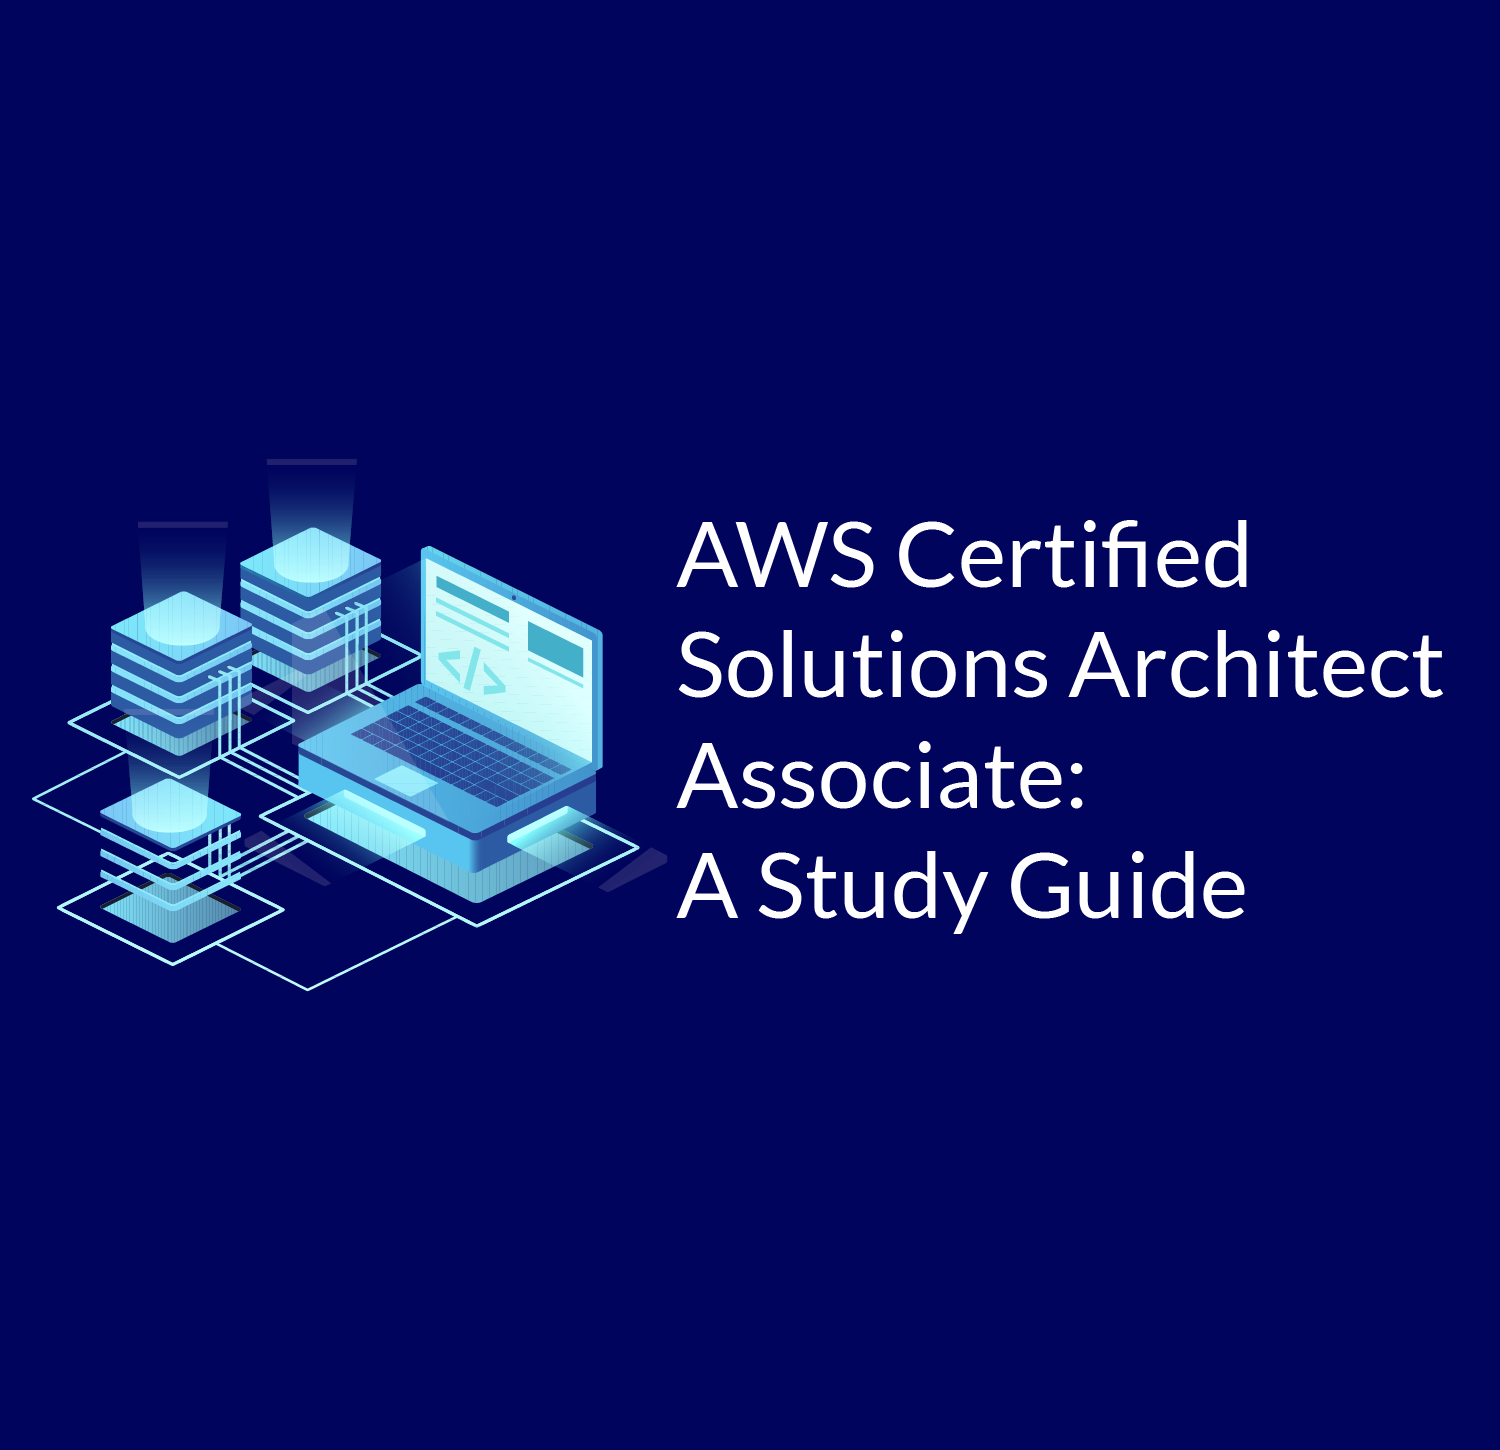 A complete AWS certified Solutions Architect associate study guide